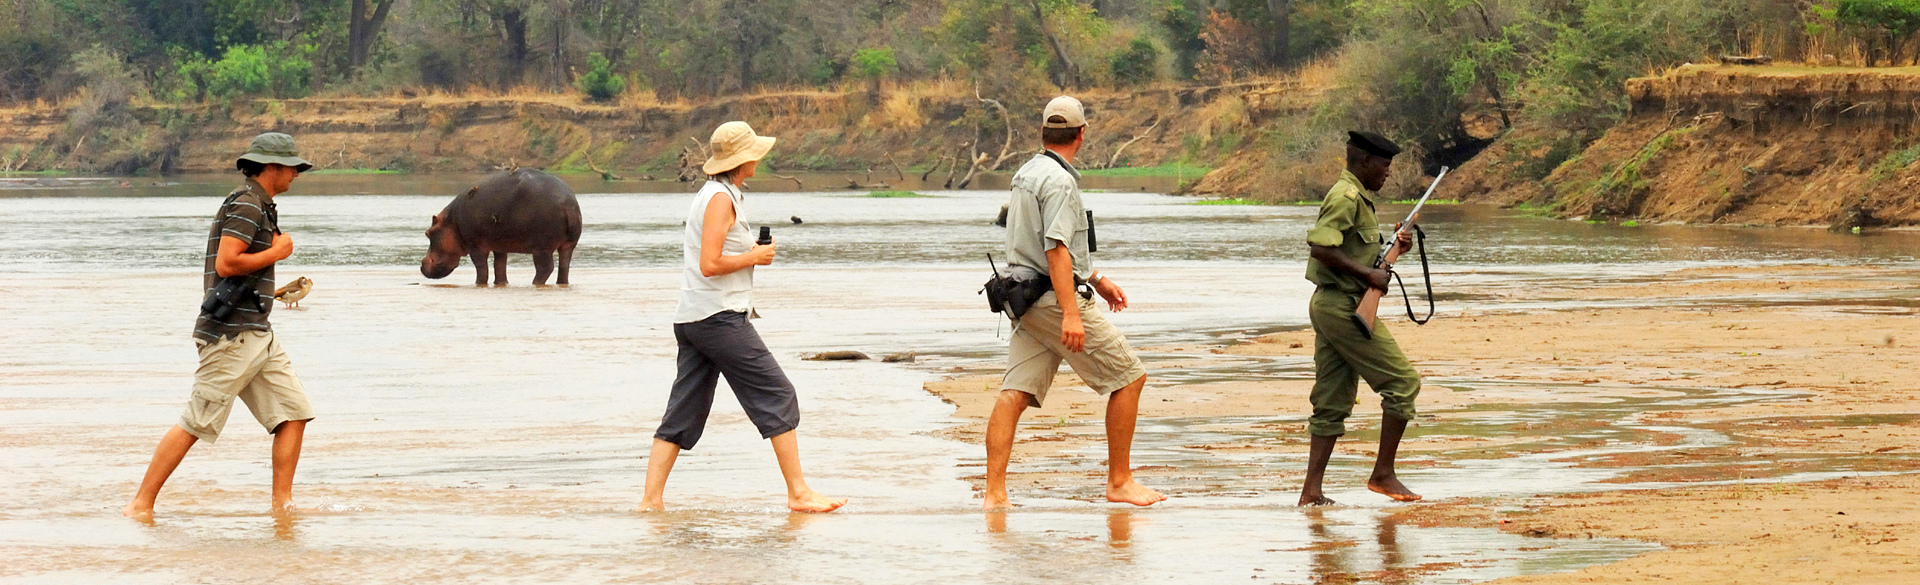 Crossing the Mwaleshi in the north Luangwa